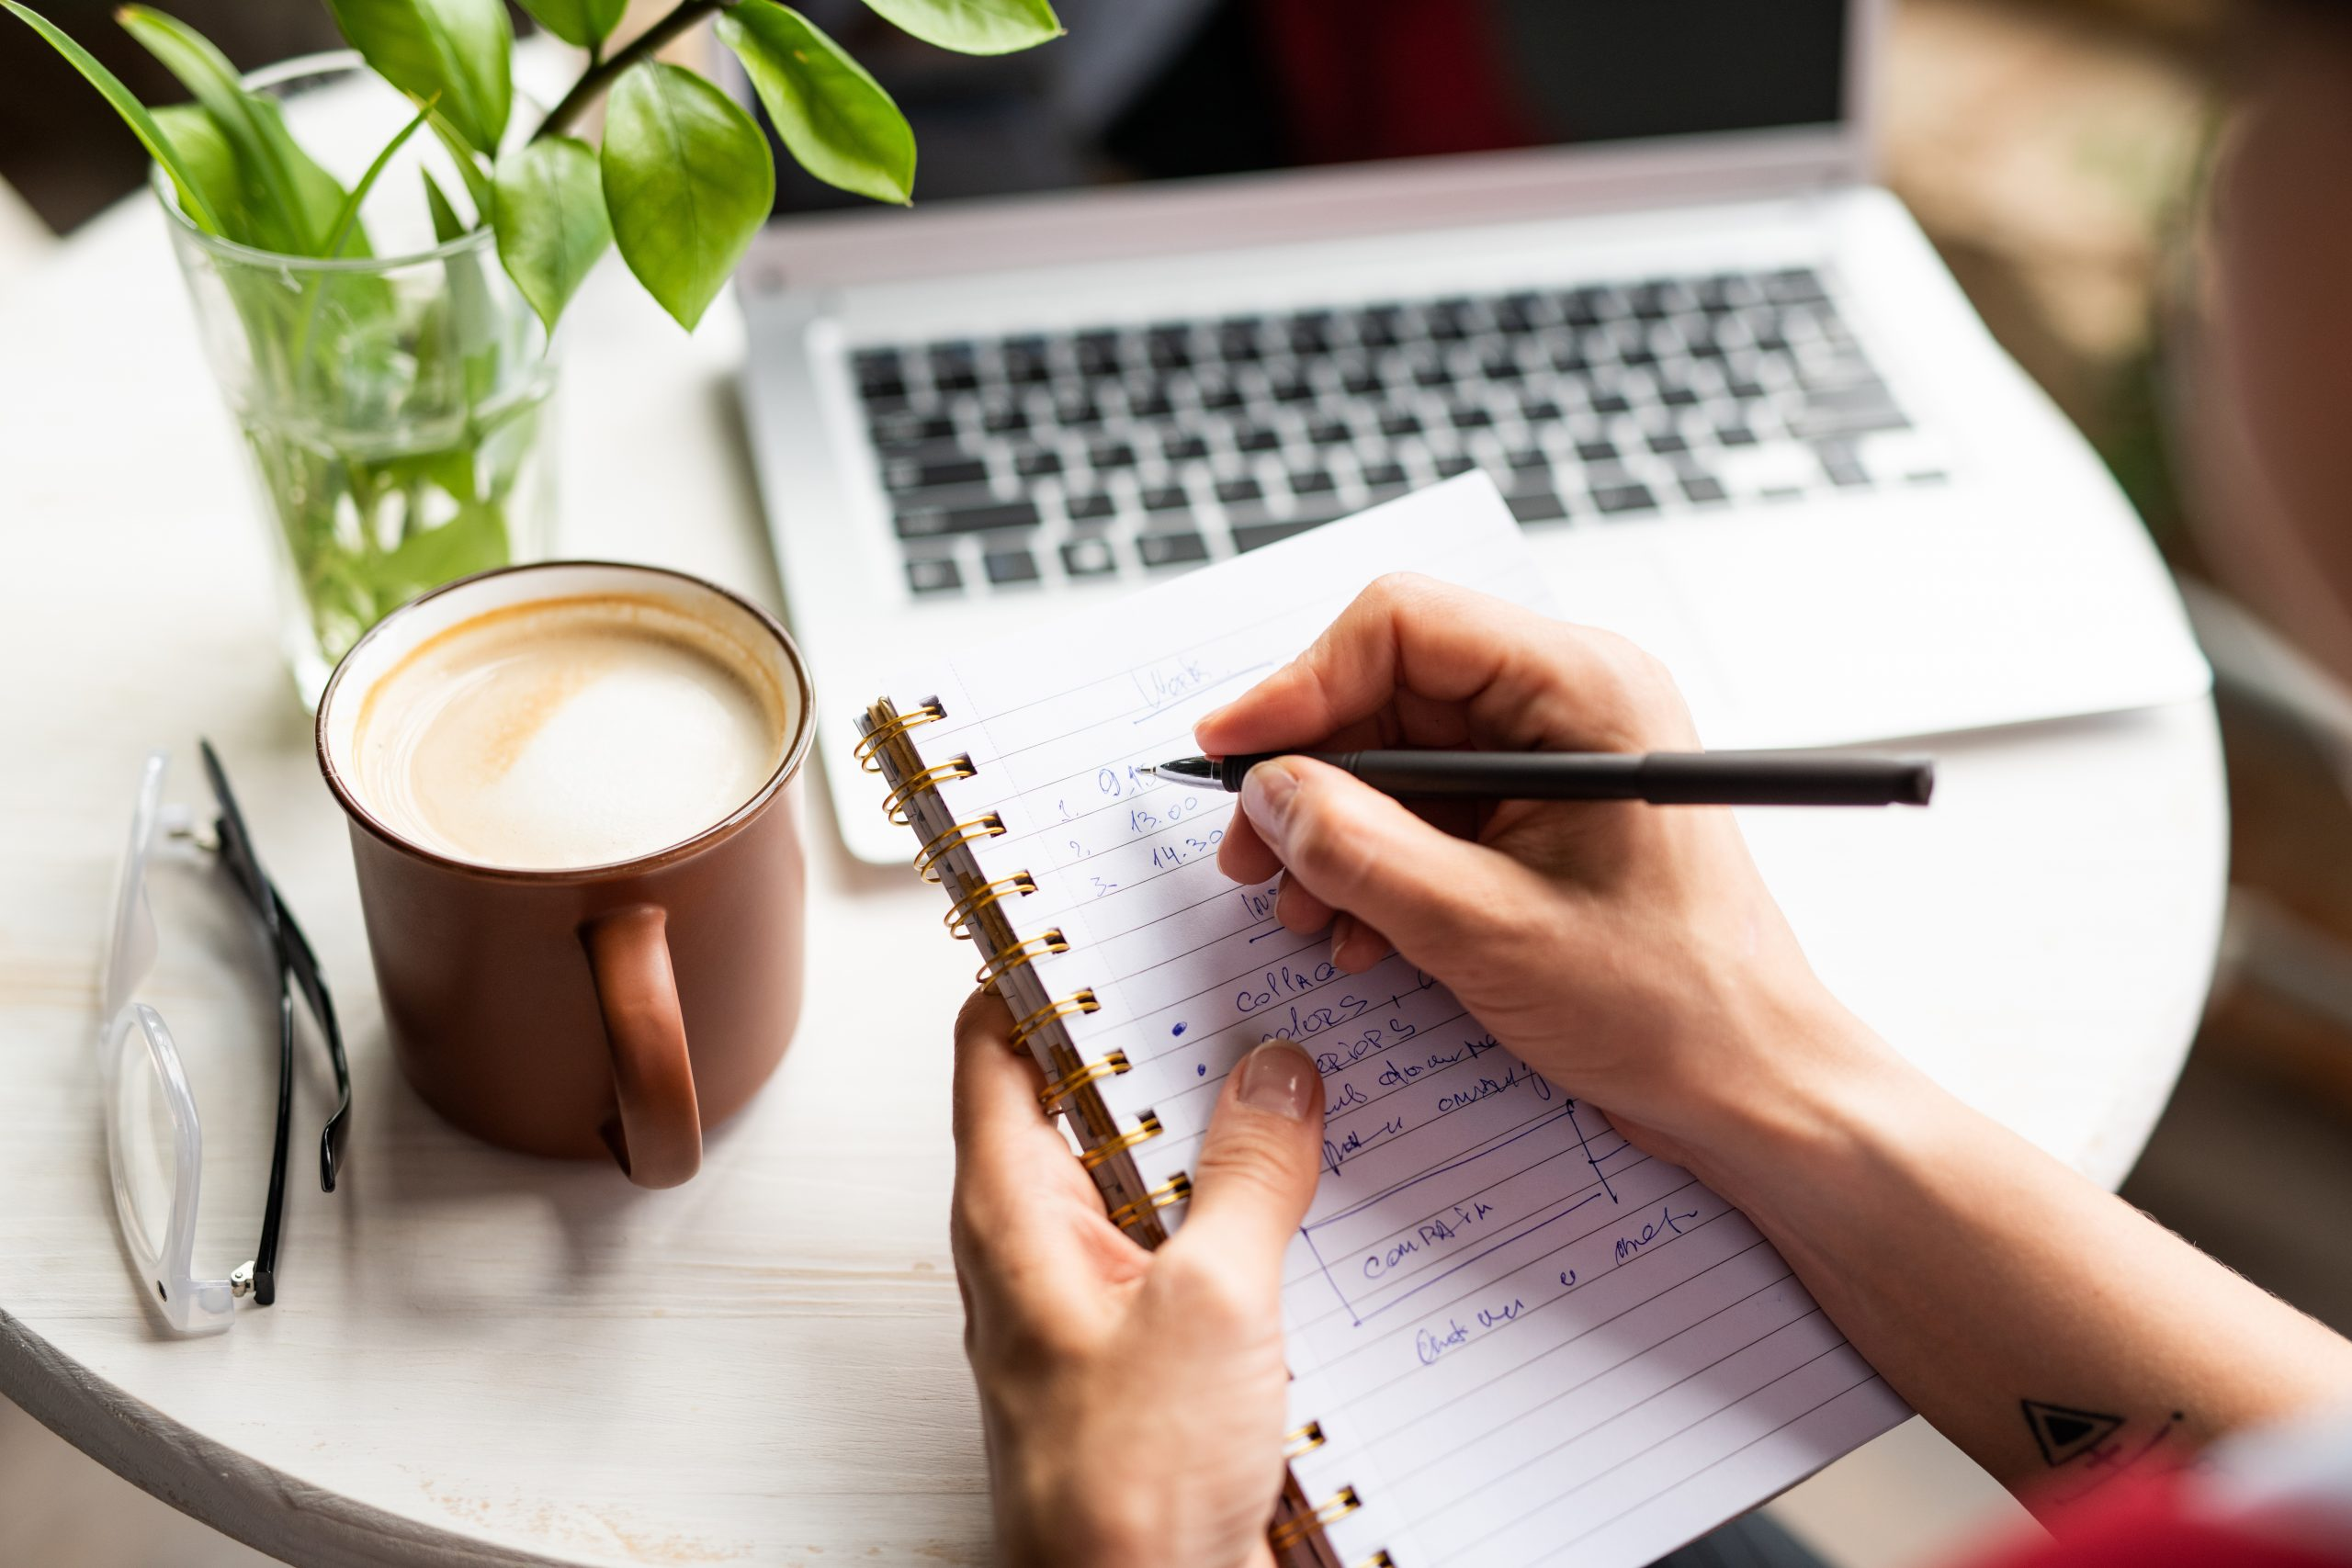 Female hands holding notebook and pen while making working notes by table in cafe and having fresh cappuccino